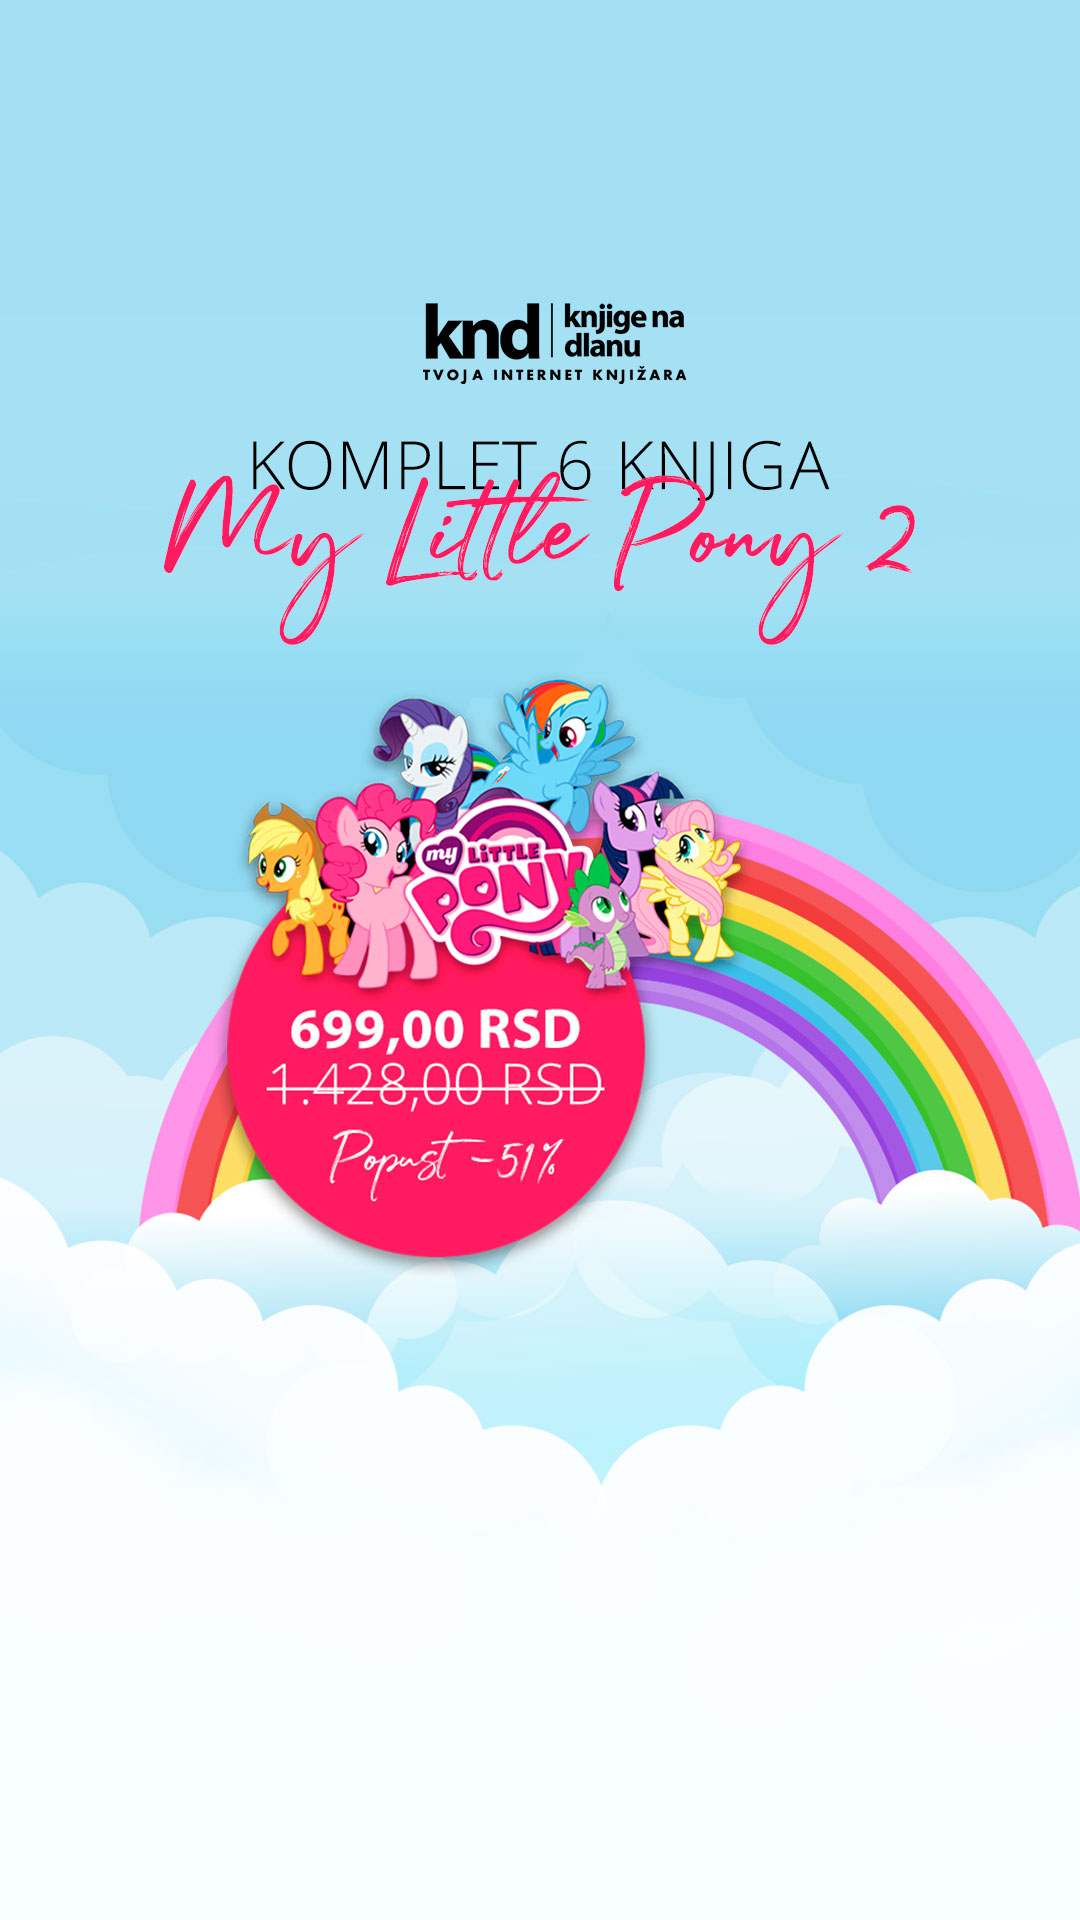 KOMPLET MY LITTLE PONY 2 – 6 KNJIGA